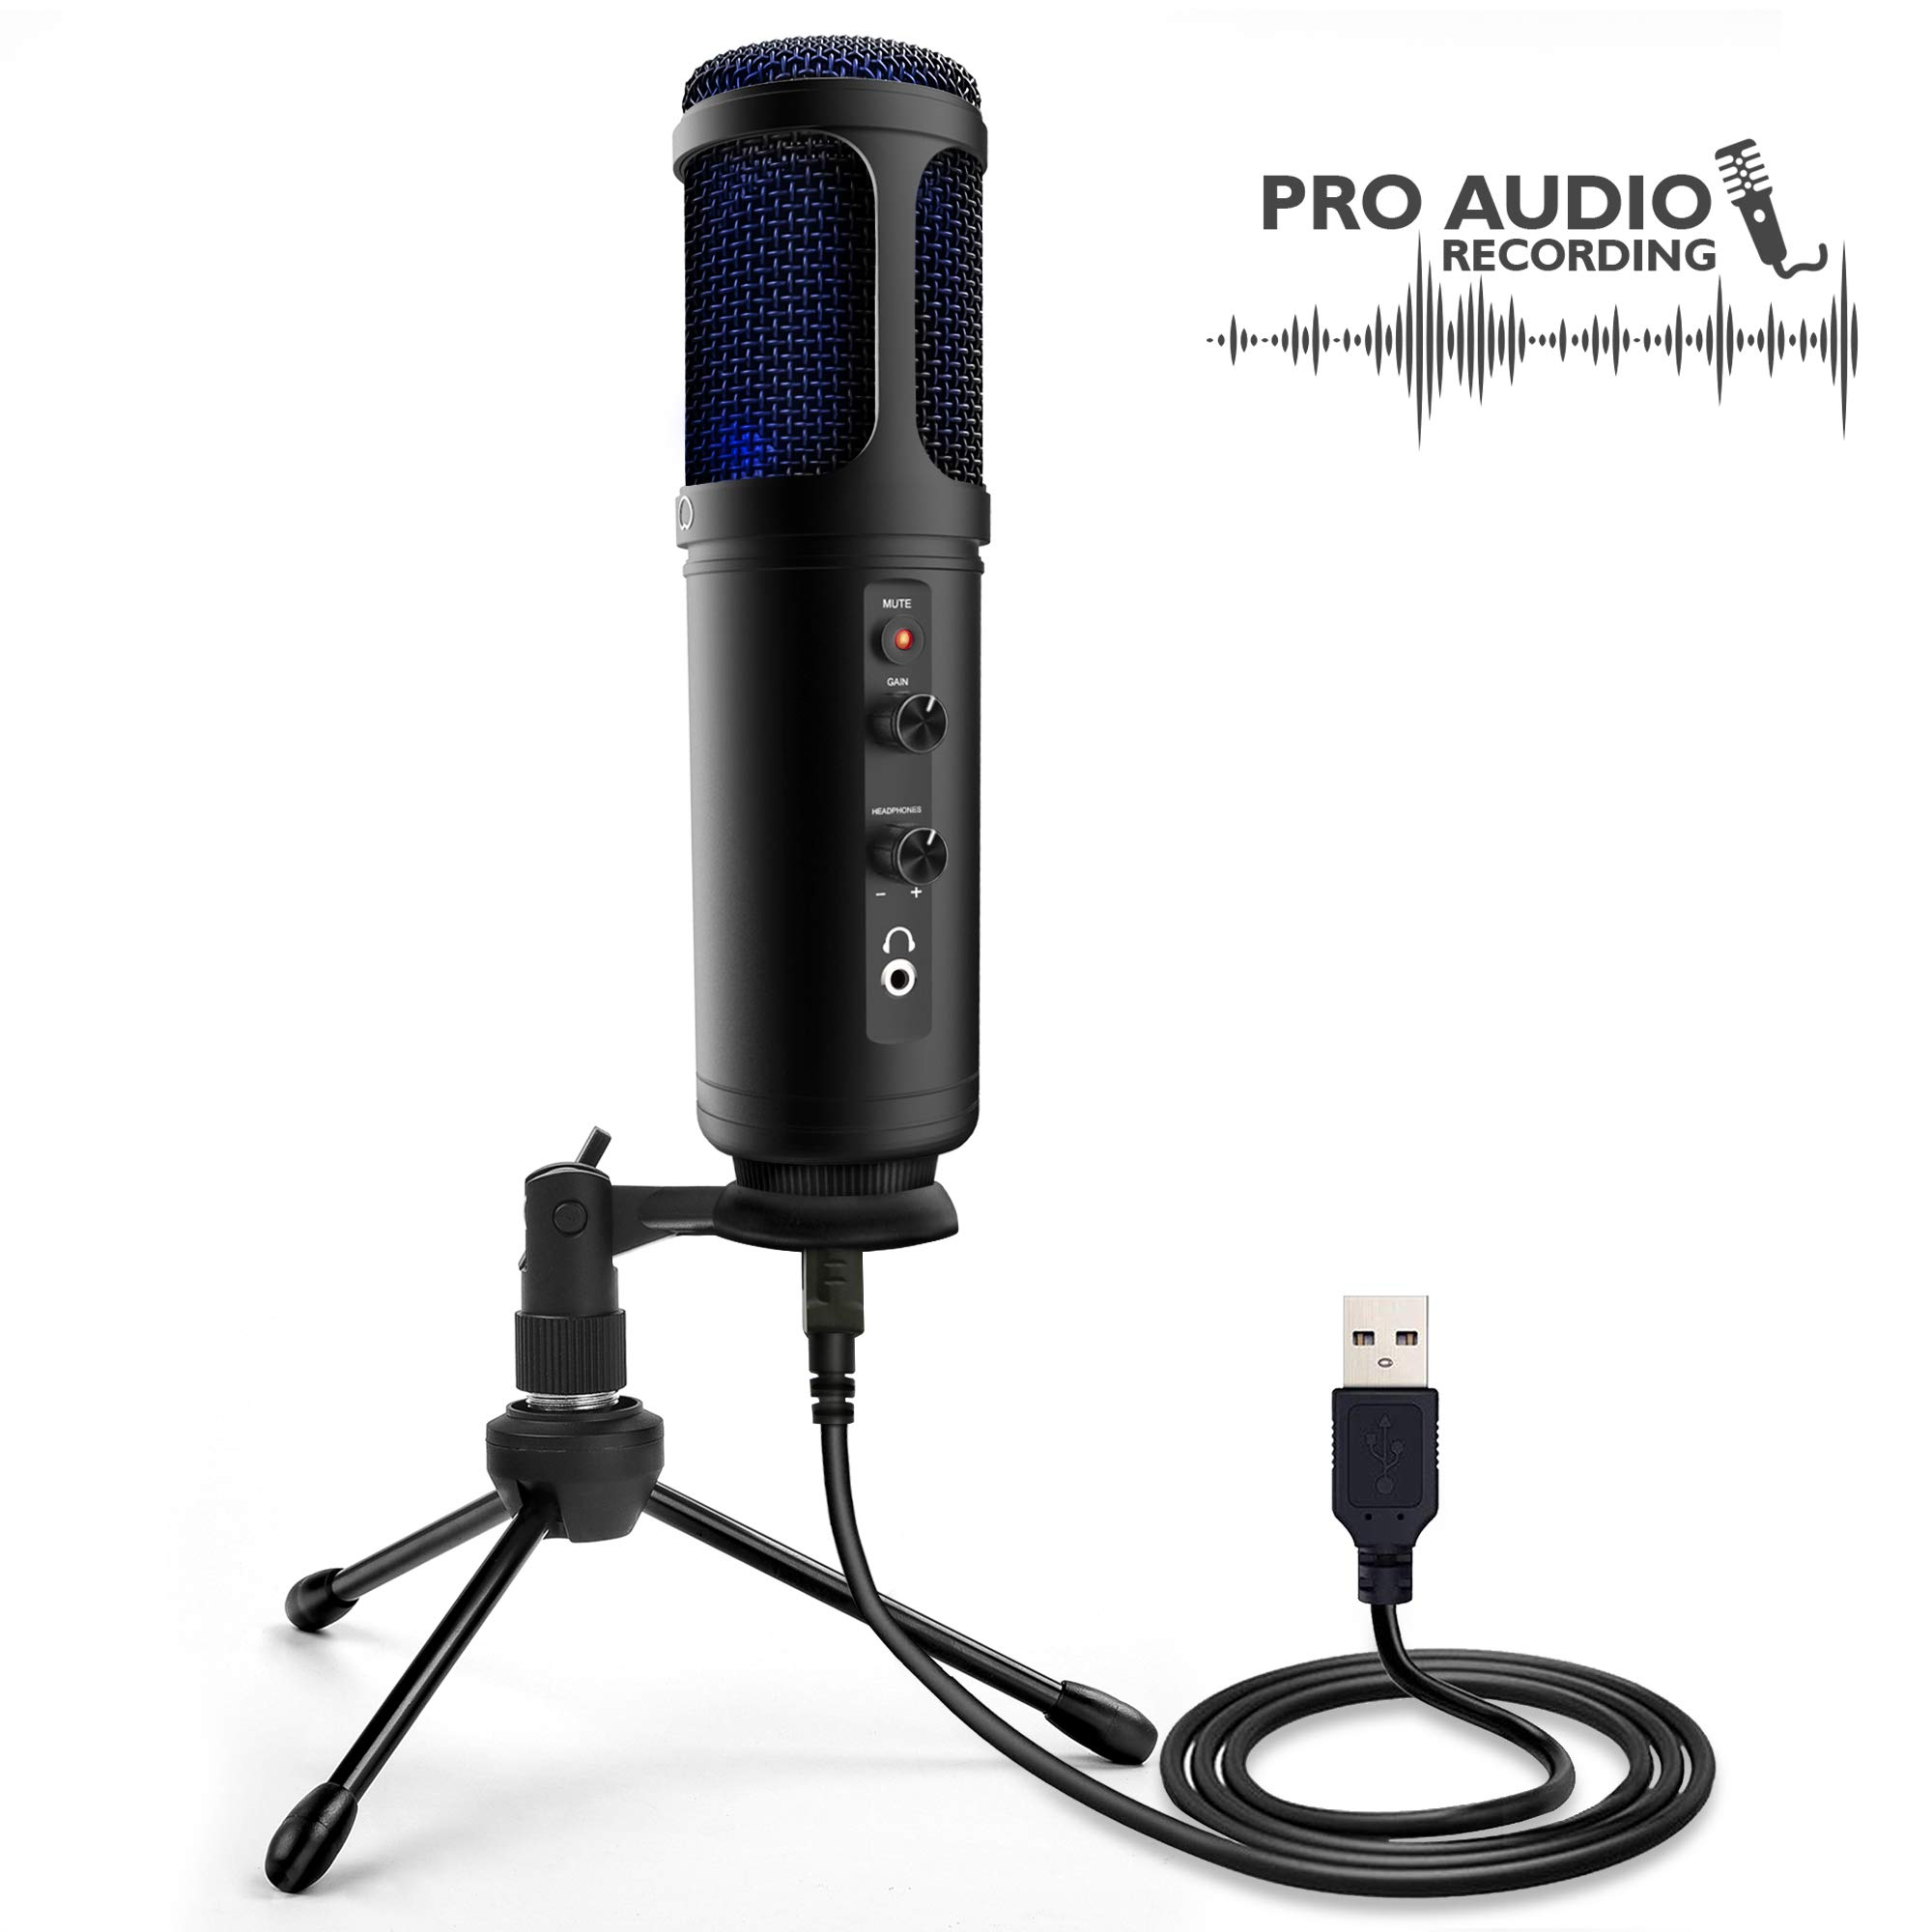 USB Plug and Play Microphone - Portable Pro Audio Condenser Recording Desk Mic w/Adjustable Gain, Headphone Jack, Mute Control, Tripod Stand for Podcast Streaming PC Gaming YouTube - Pyle PDMIUSB50